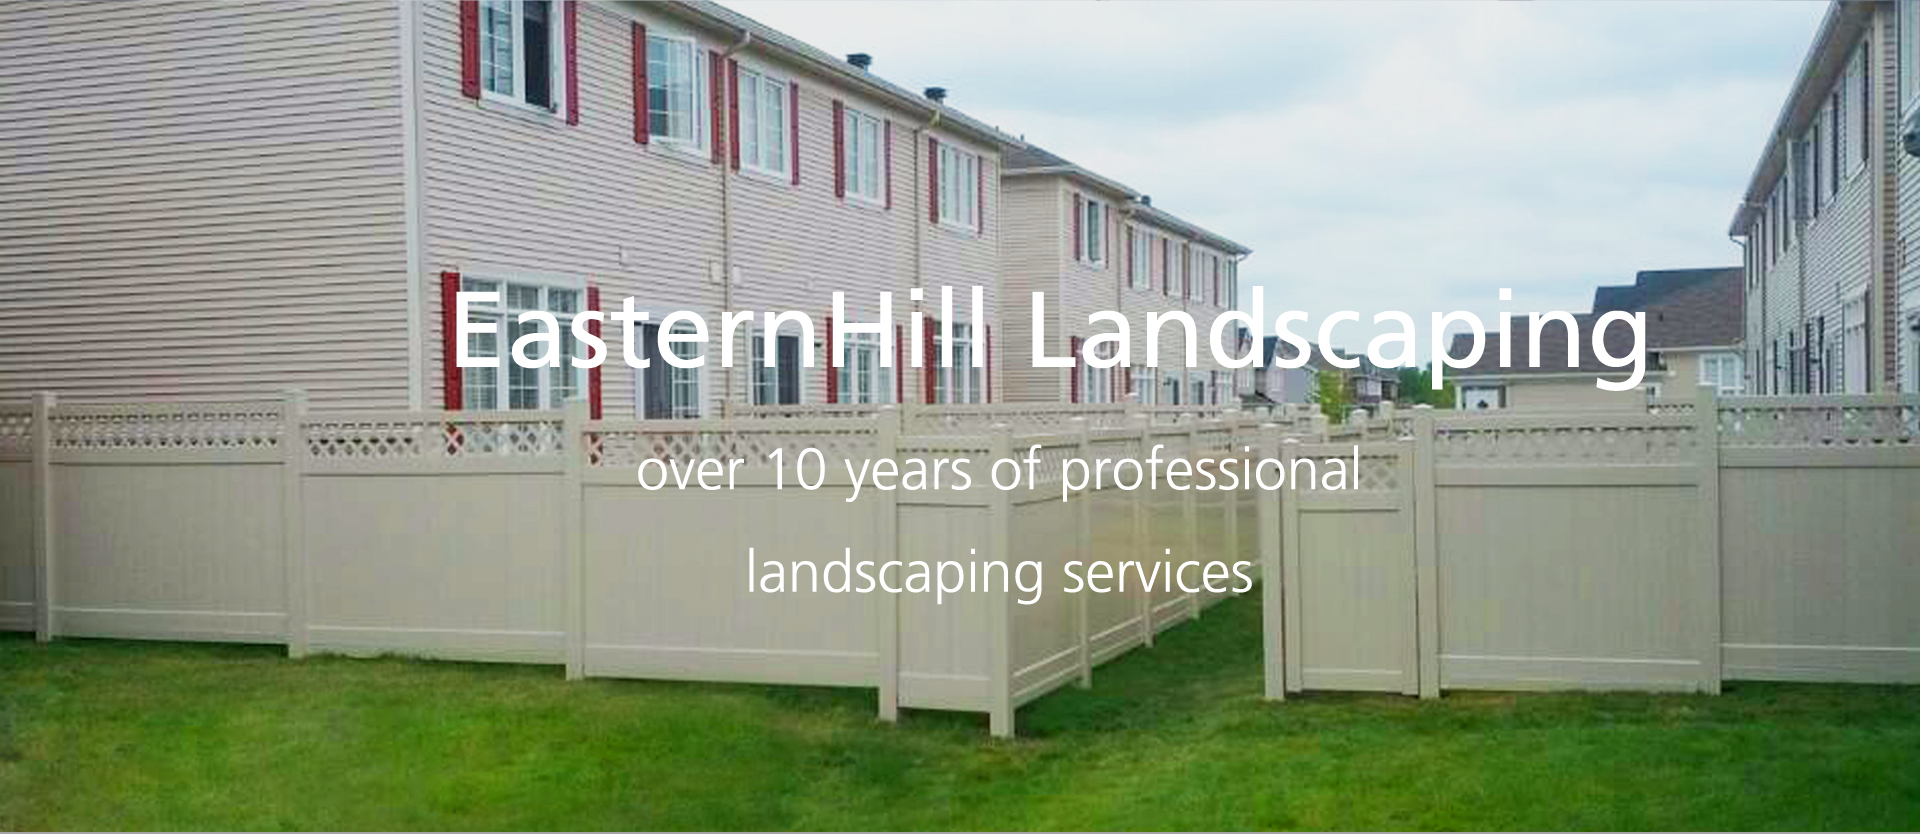 Third slide | Eastern Hill Landscaping